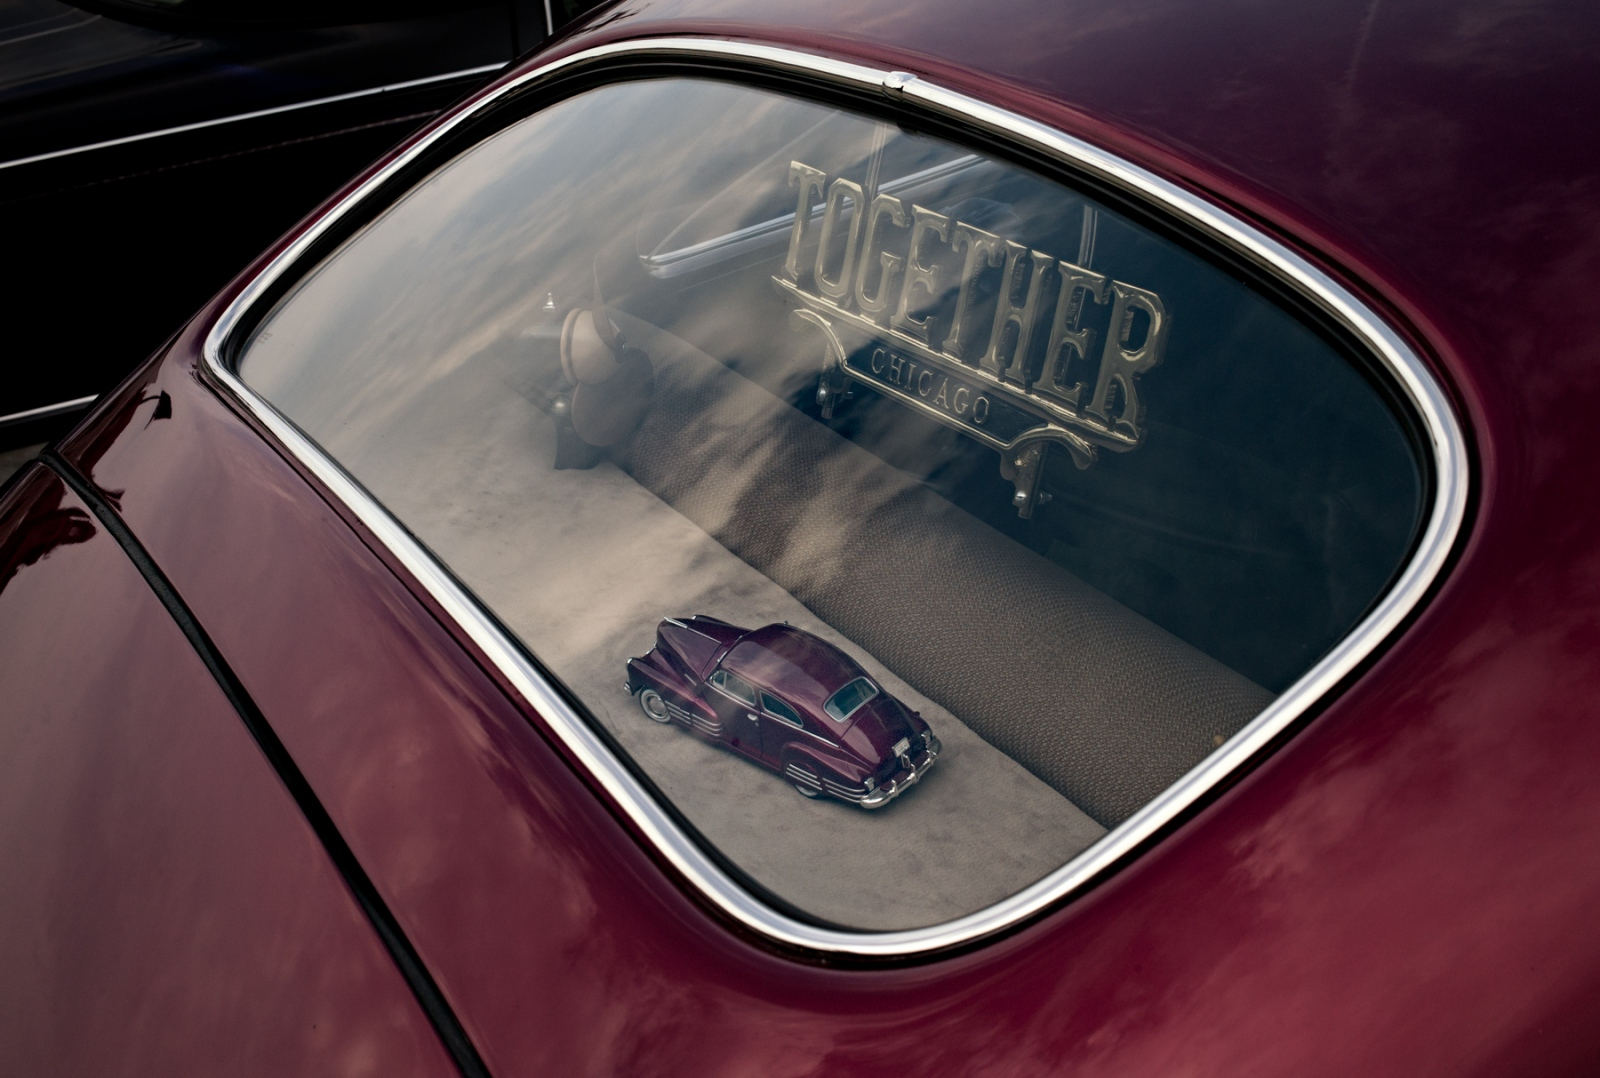 Art and Documentary Photography - Loading LowRider2014-108-Edit-2.jpg